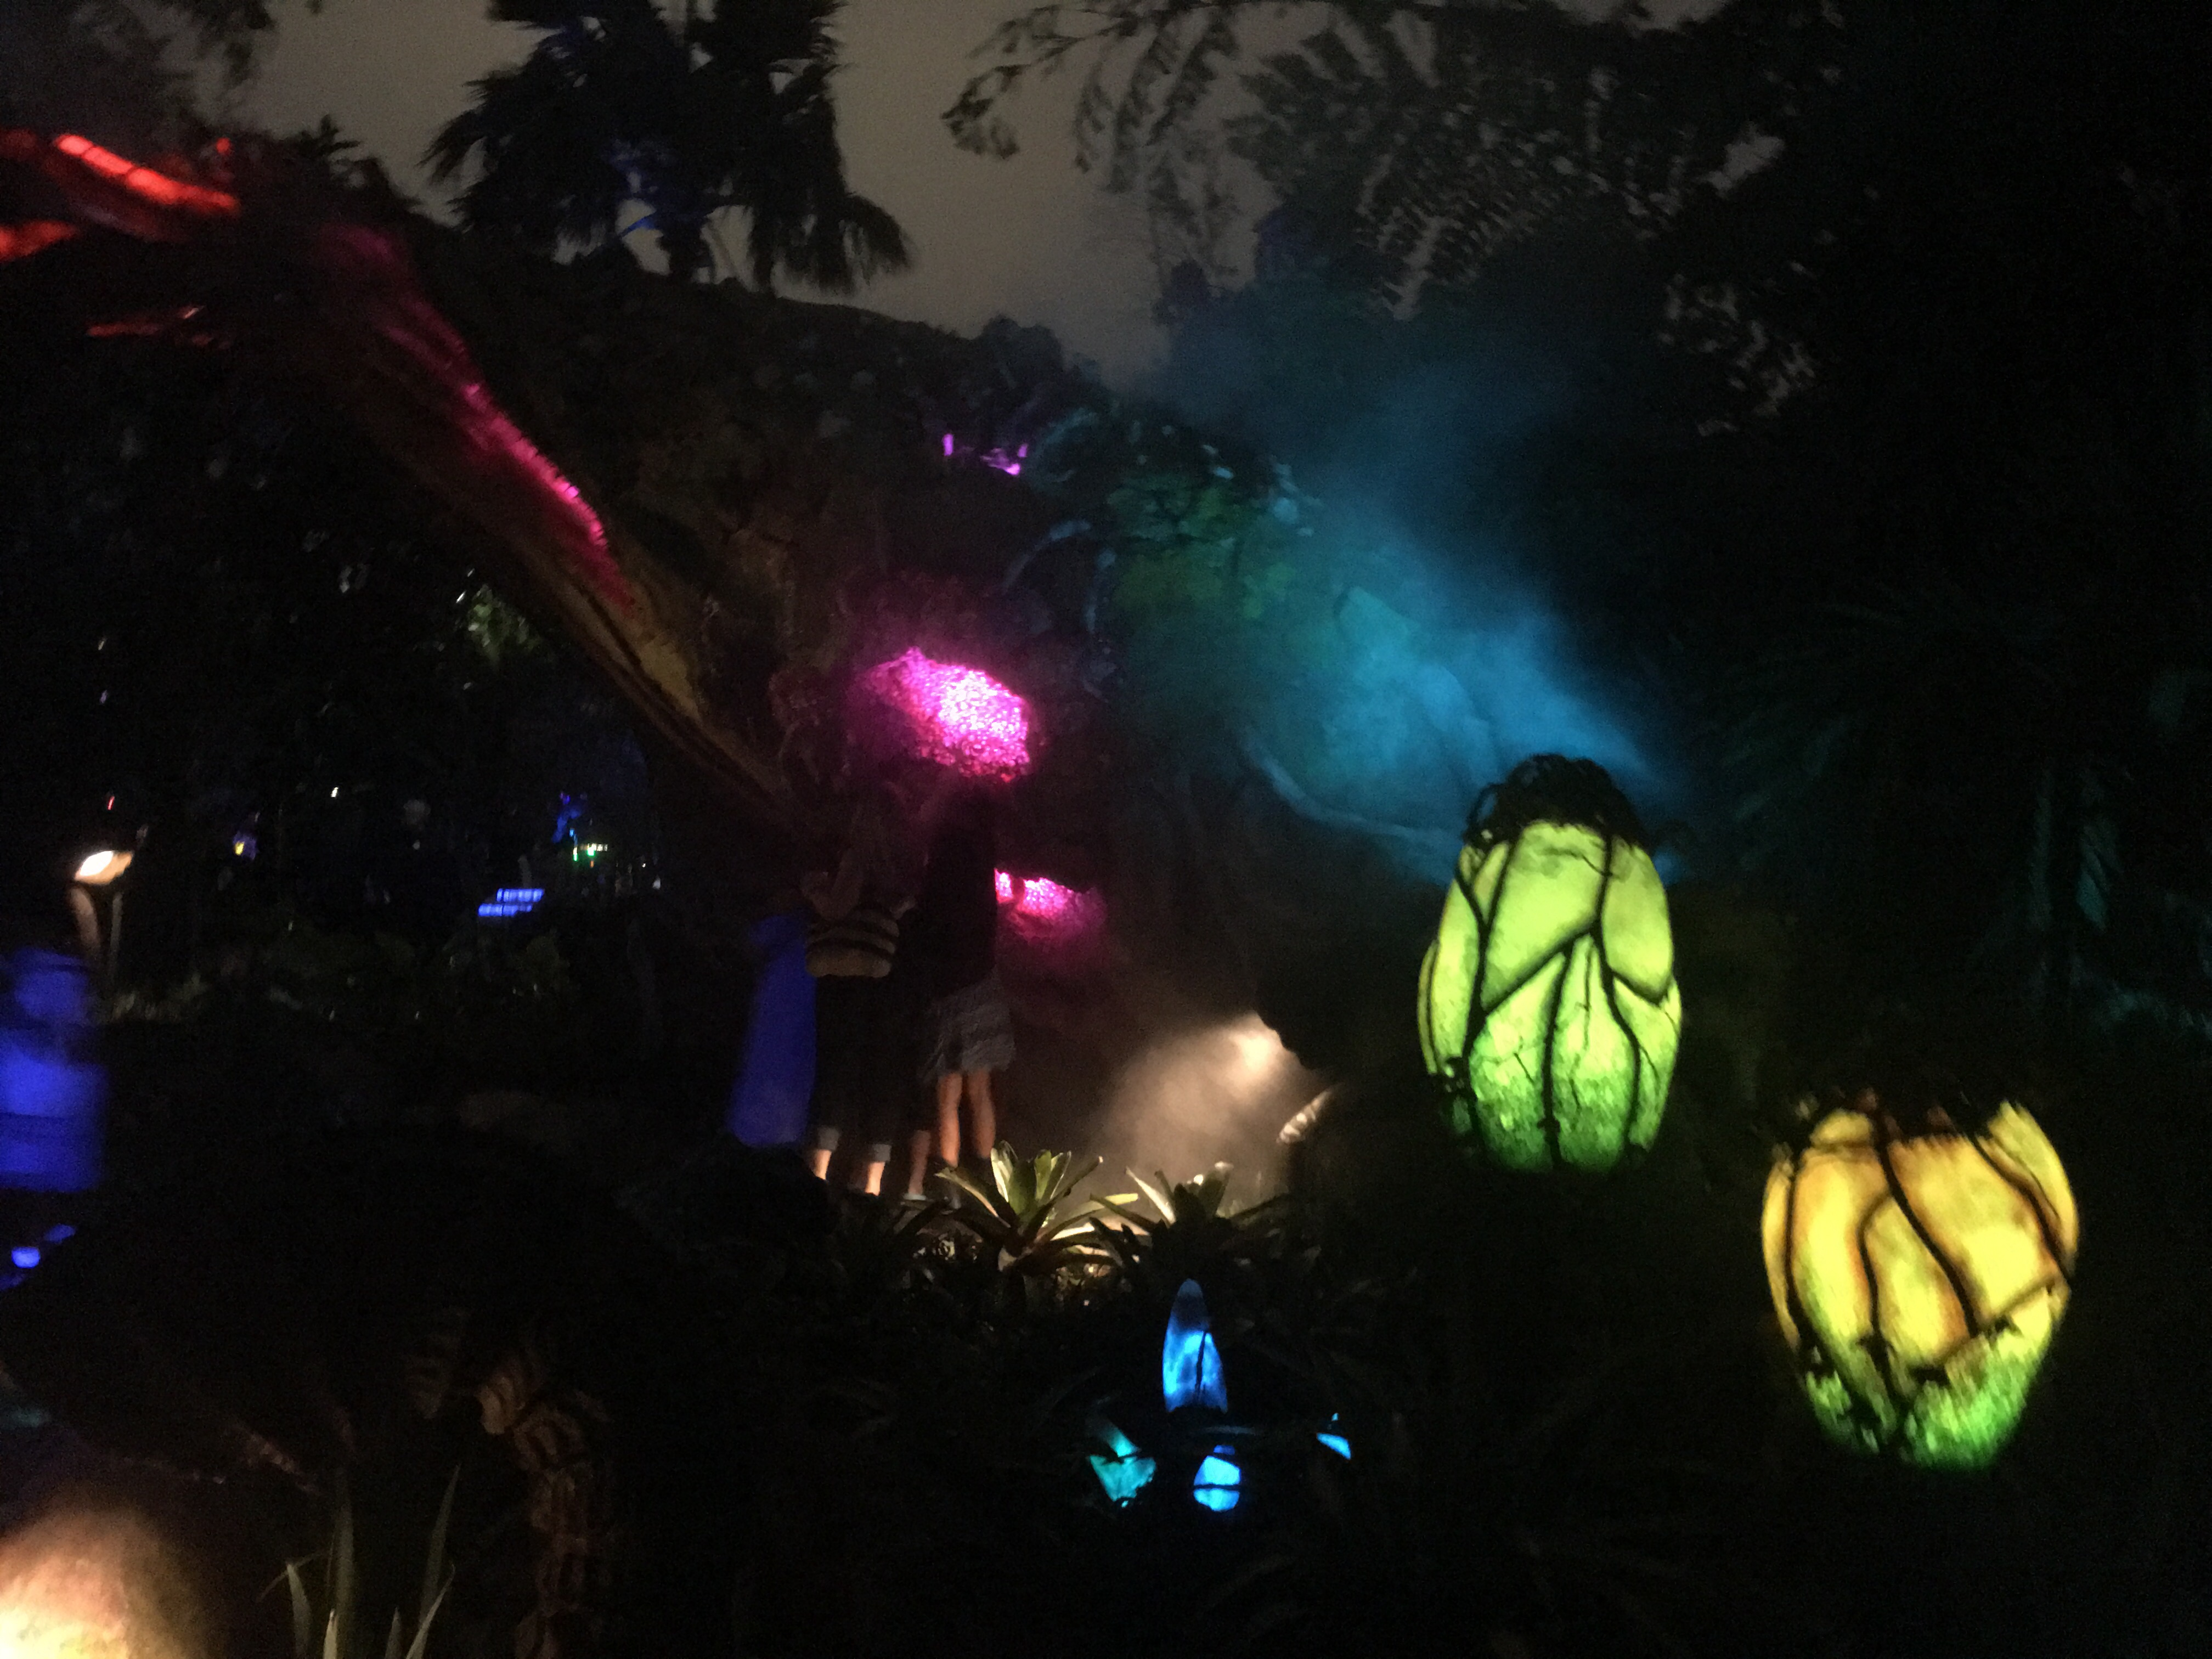 It's a wonderland of color and light at Pandora: The World of Avatar.